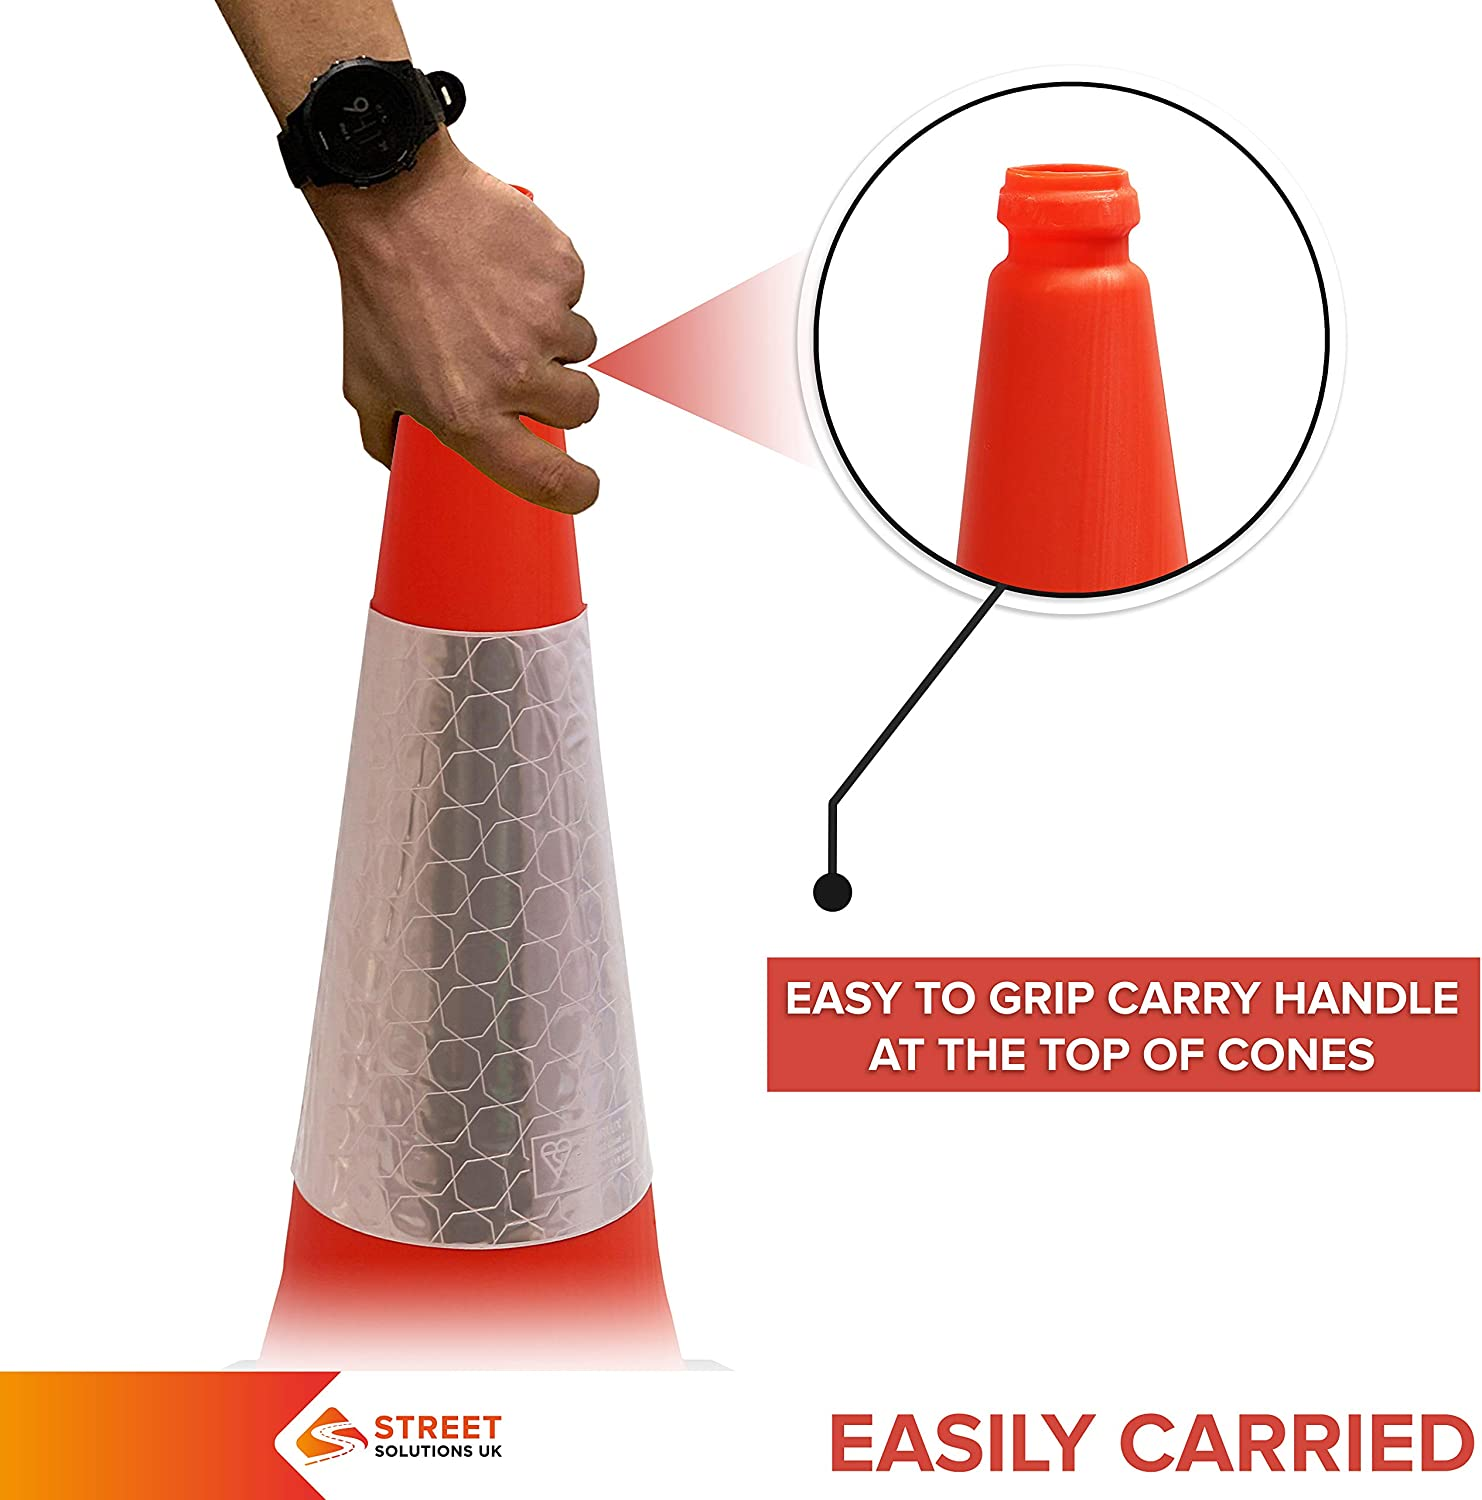 5 x 750 mm Road Traffic Cones Green Premium Quality Safety Cone Strong and Durable with Extremely Low Centre of Gravity Street Solutions Self Weighted